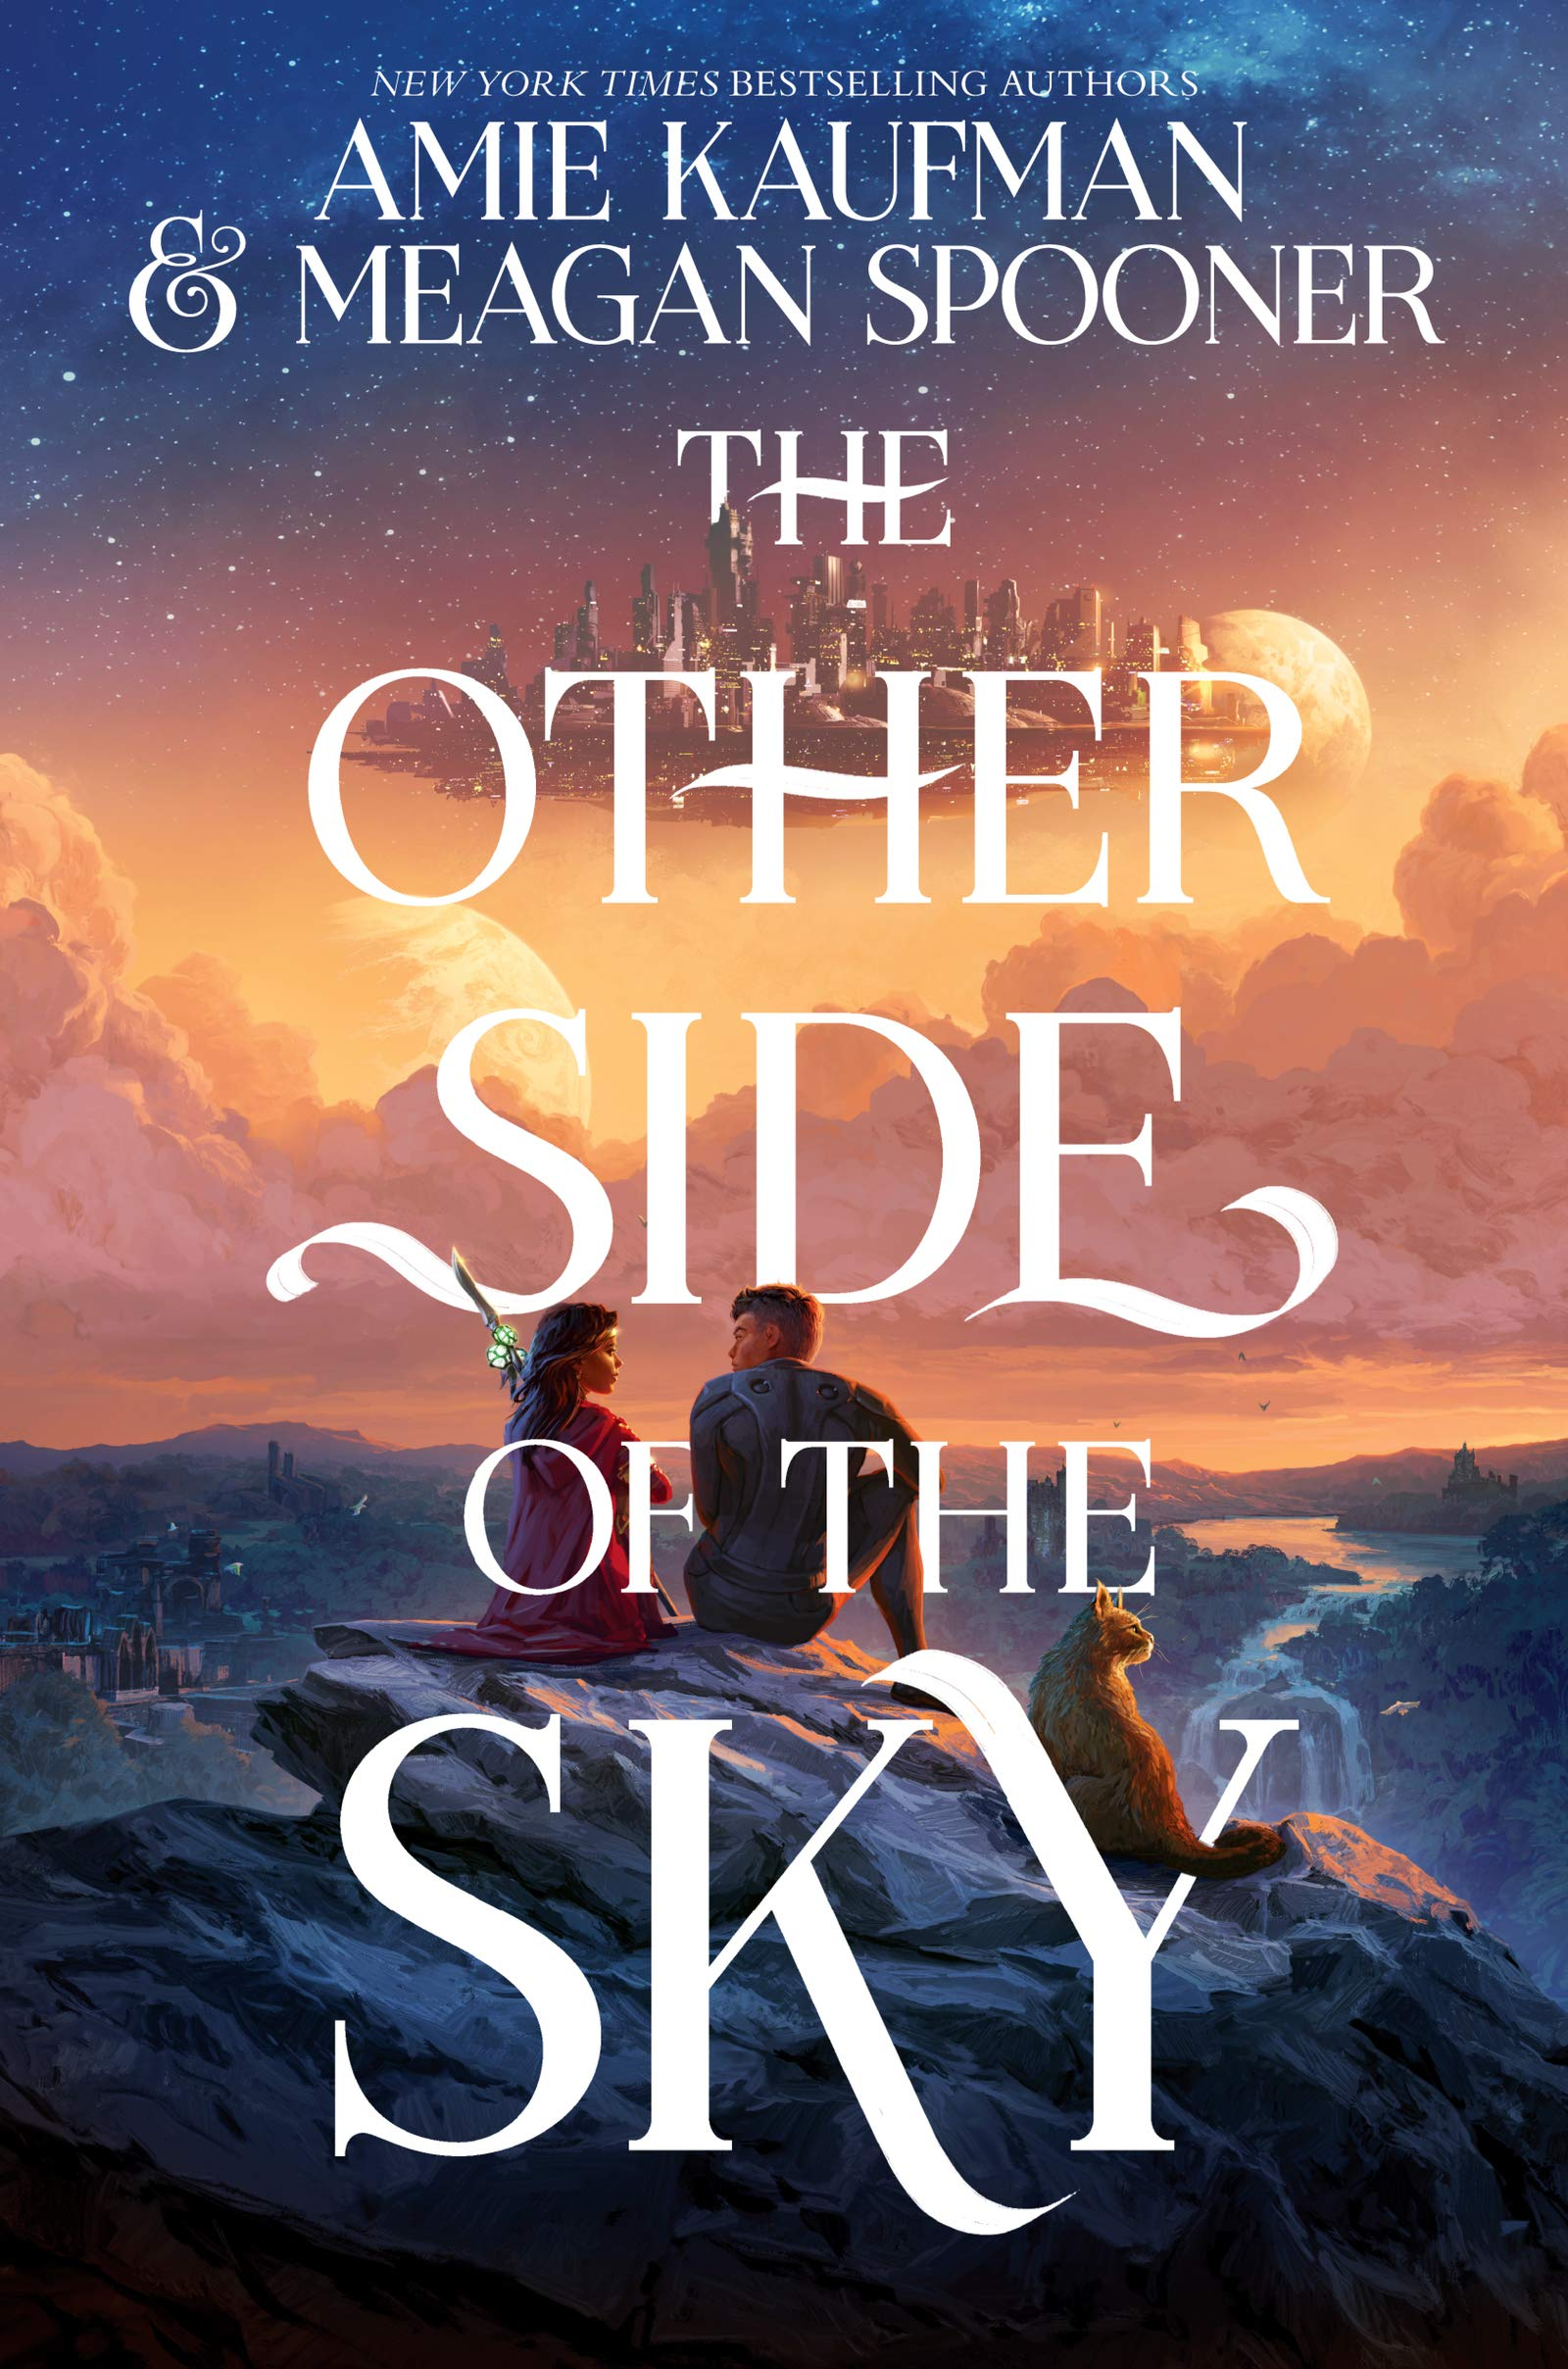 Amazon.com: The Other Side of the Sky (9780062893338): Kaufman, Amie,  Spooner, Meagan: Books